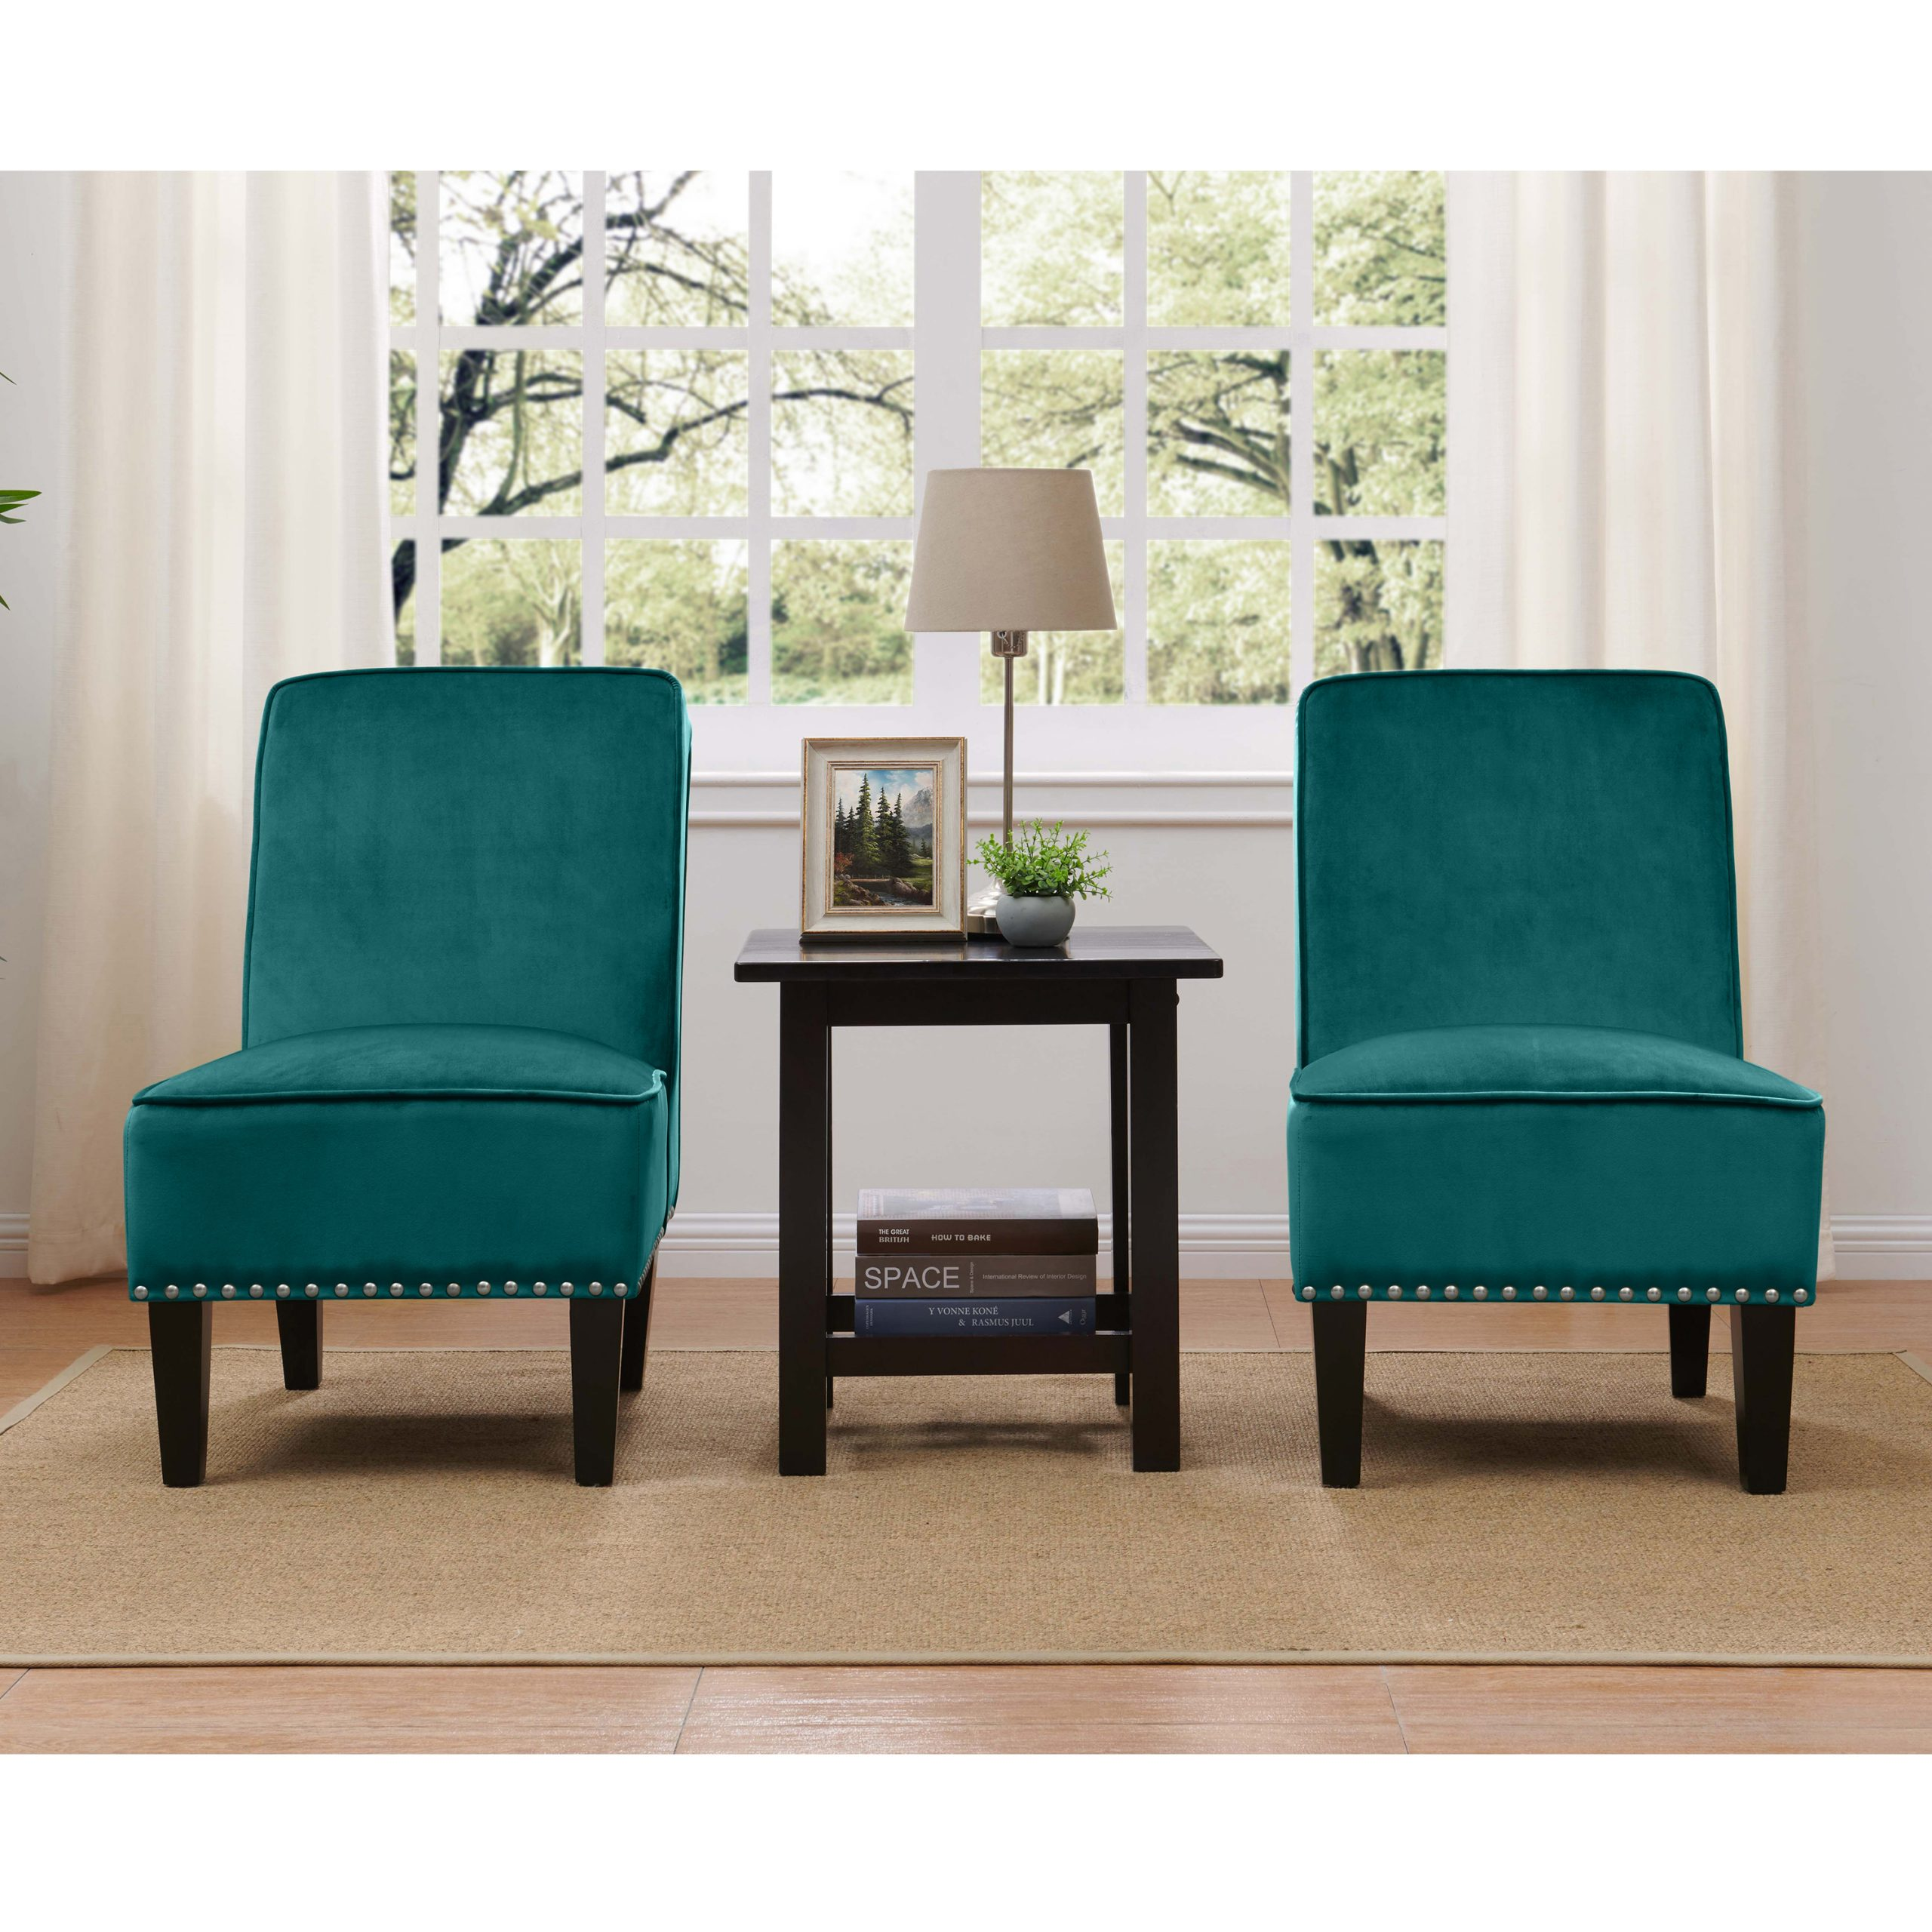 Brodee Armless Chair In Velvet, Multiple Colors (Set Of 2) – Walmart With Goodyear Slipper Chairs (View 14 of 15)